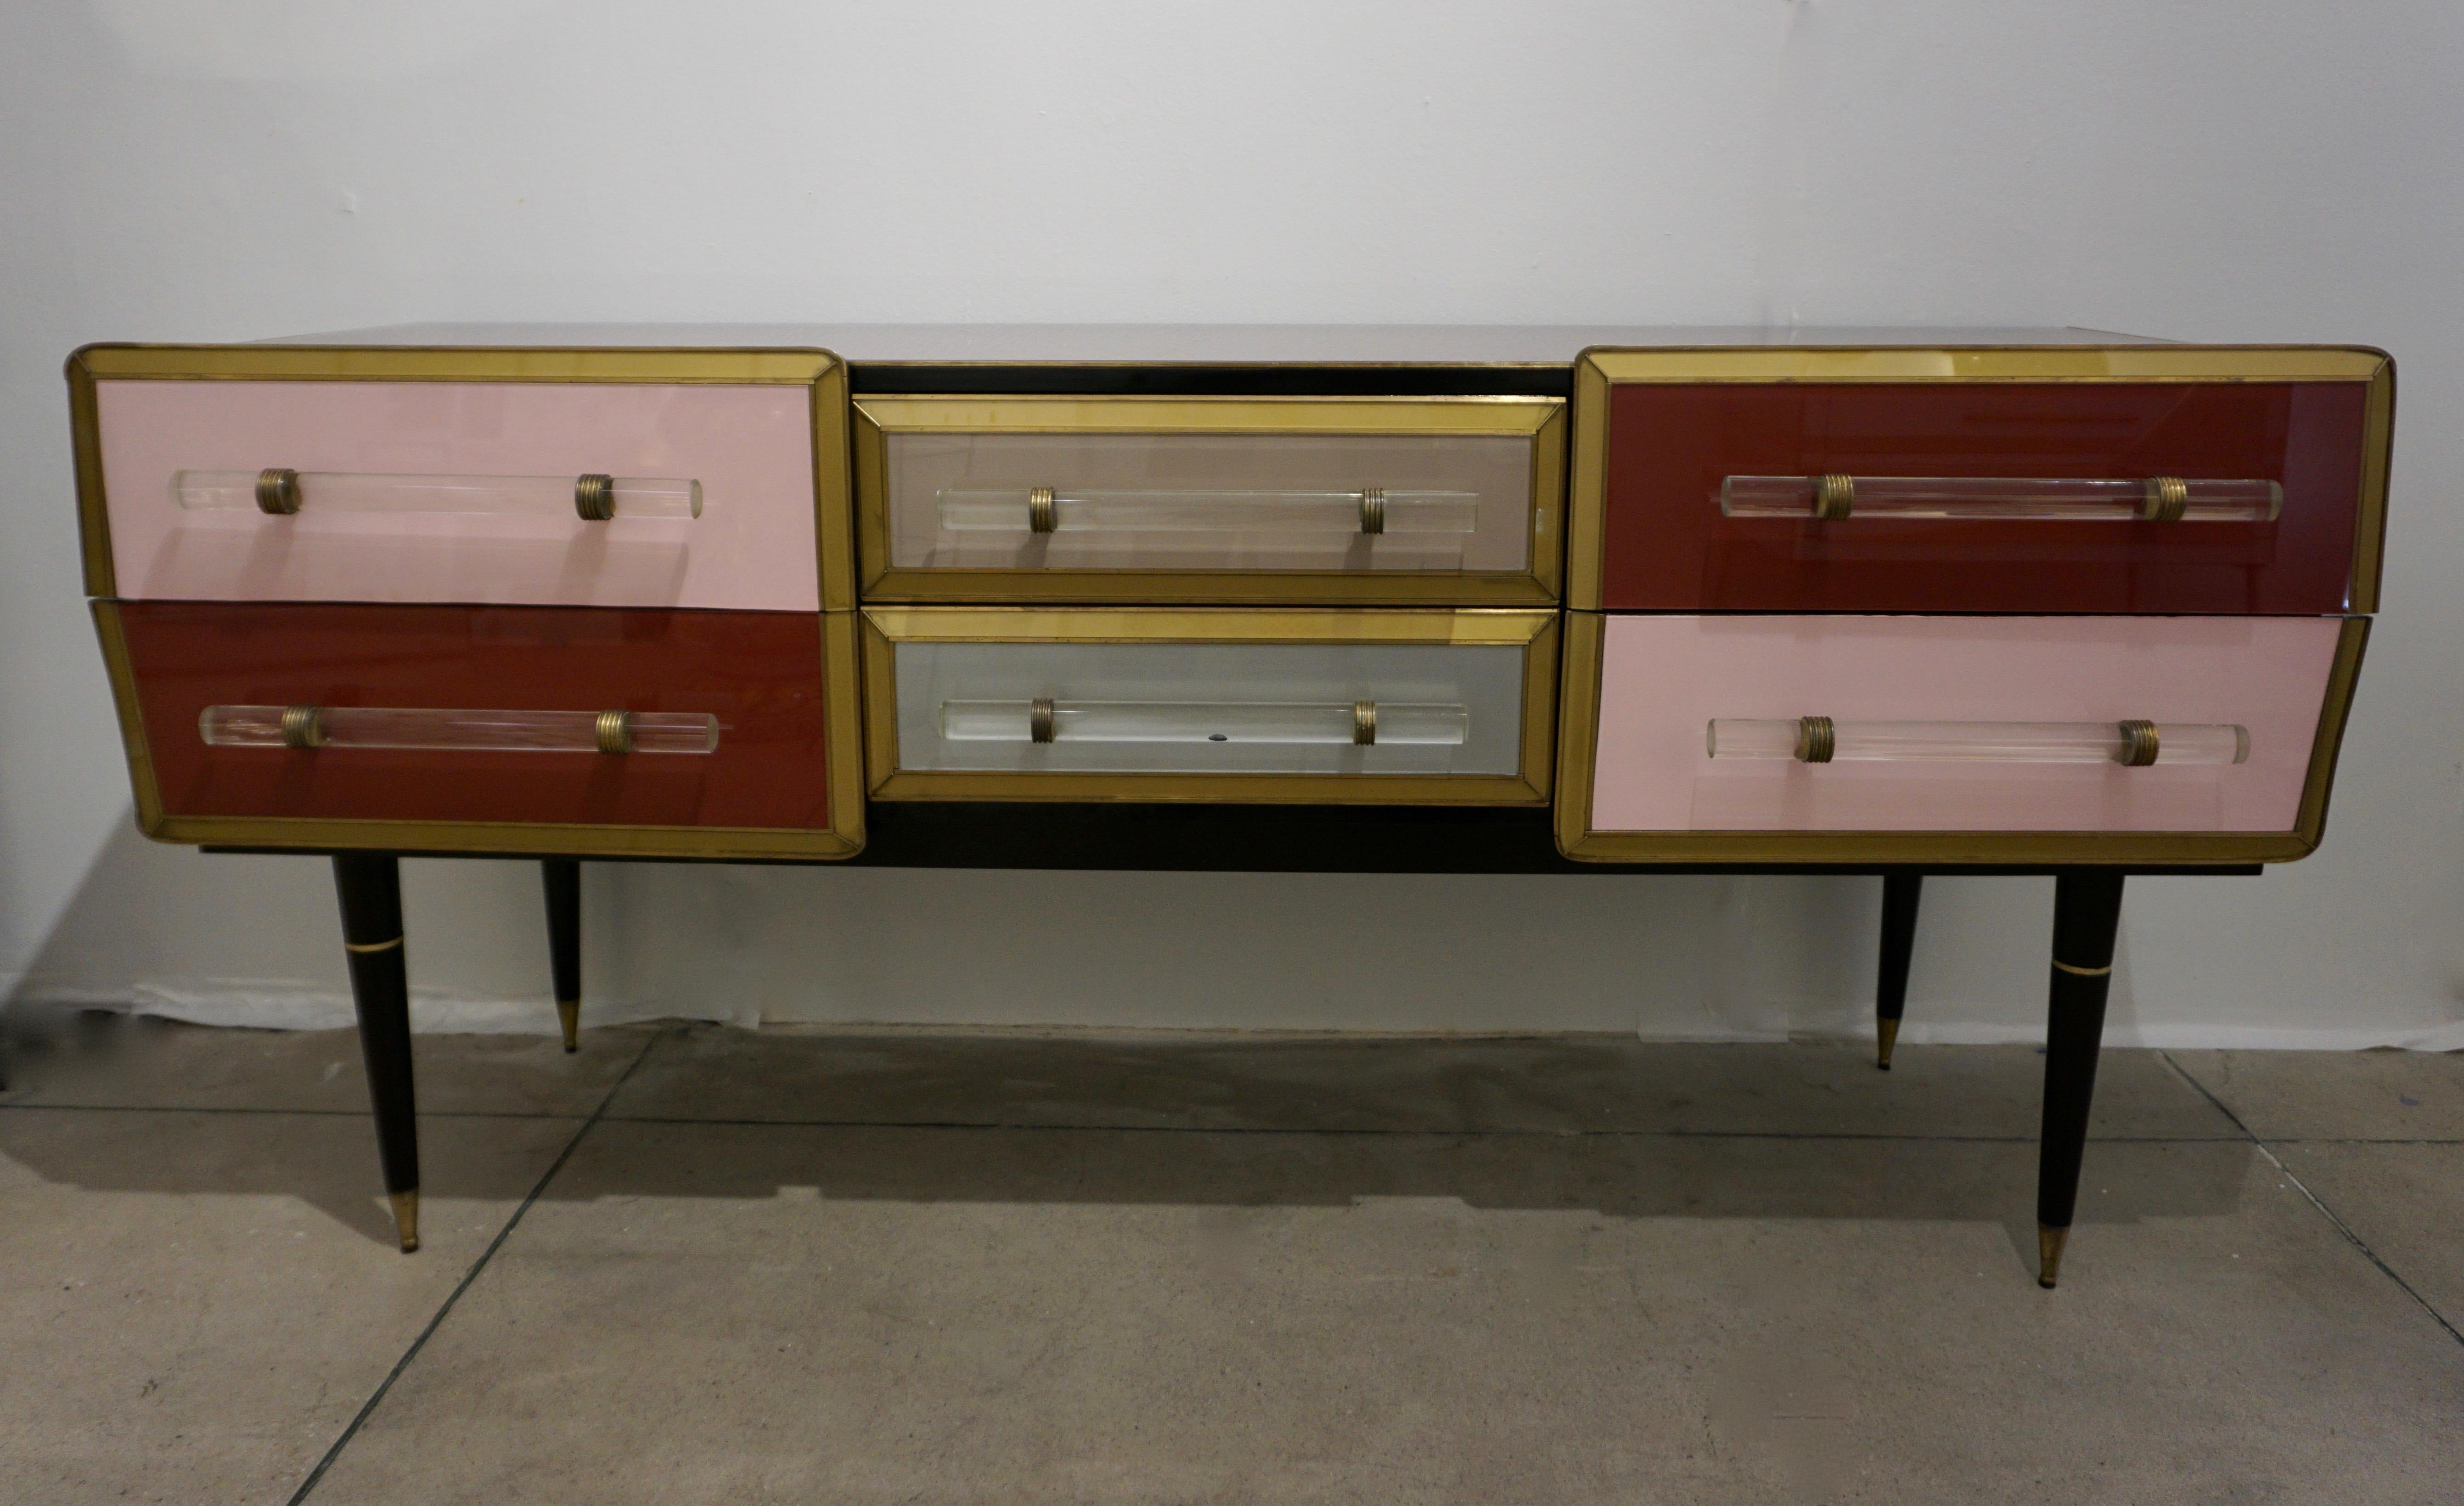 Vintage Nathan Sideboard 1960 Italian Vintage Rose Pink Gray Wine Gold Sideboard Console With 6 Drawers